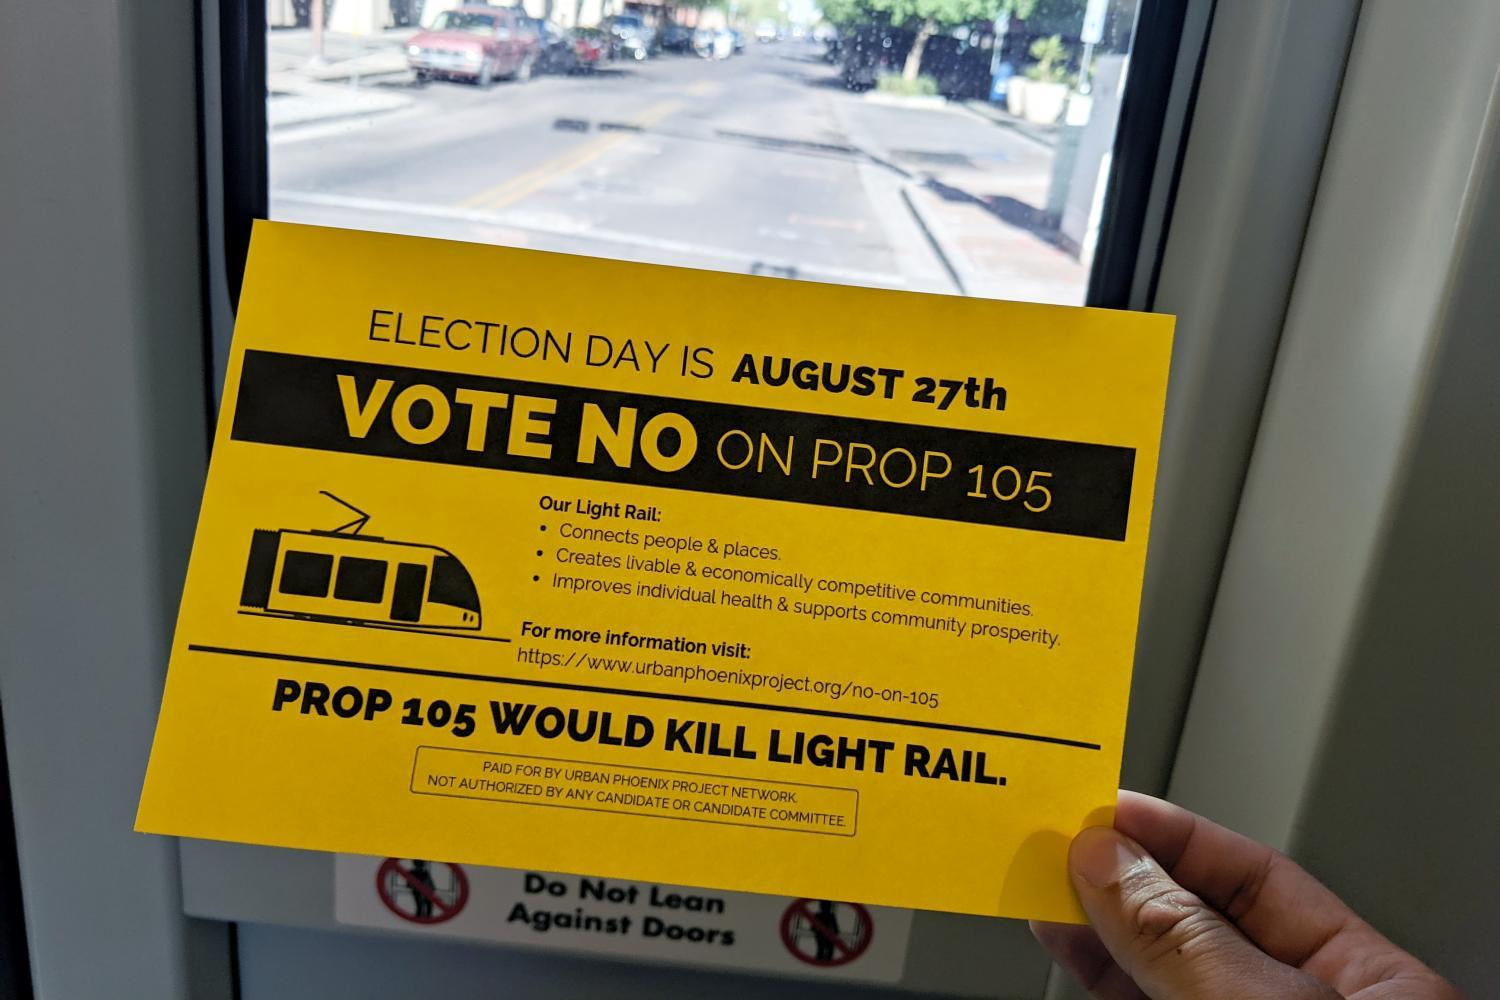 Light rail handout flyer against Prop 105